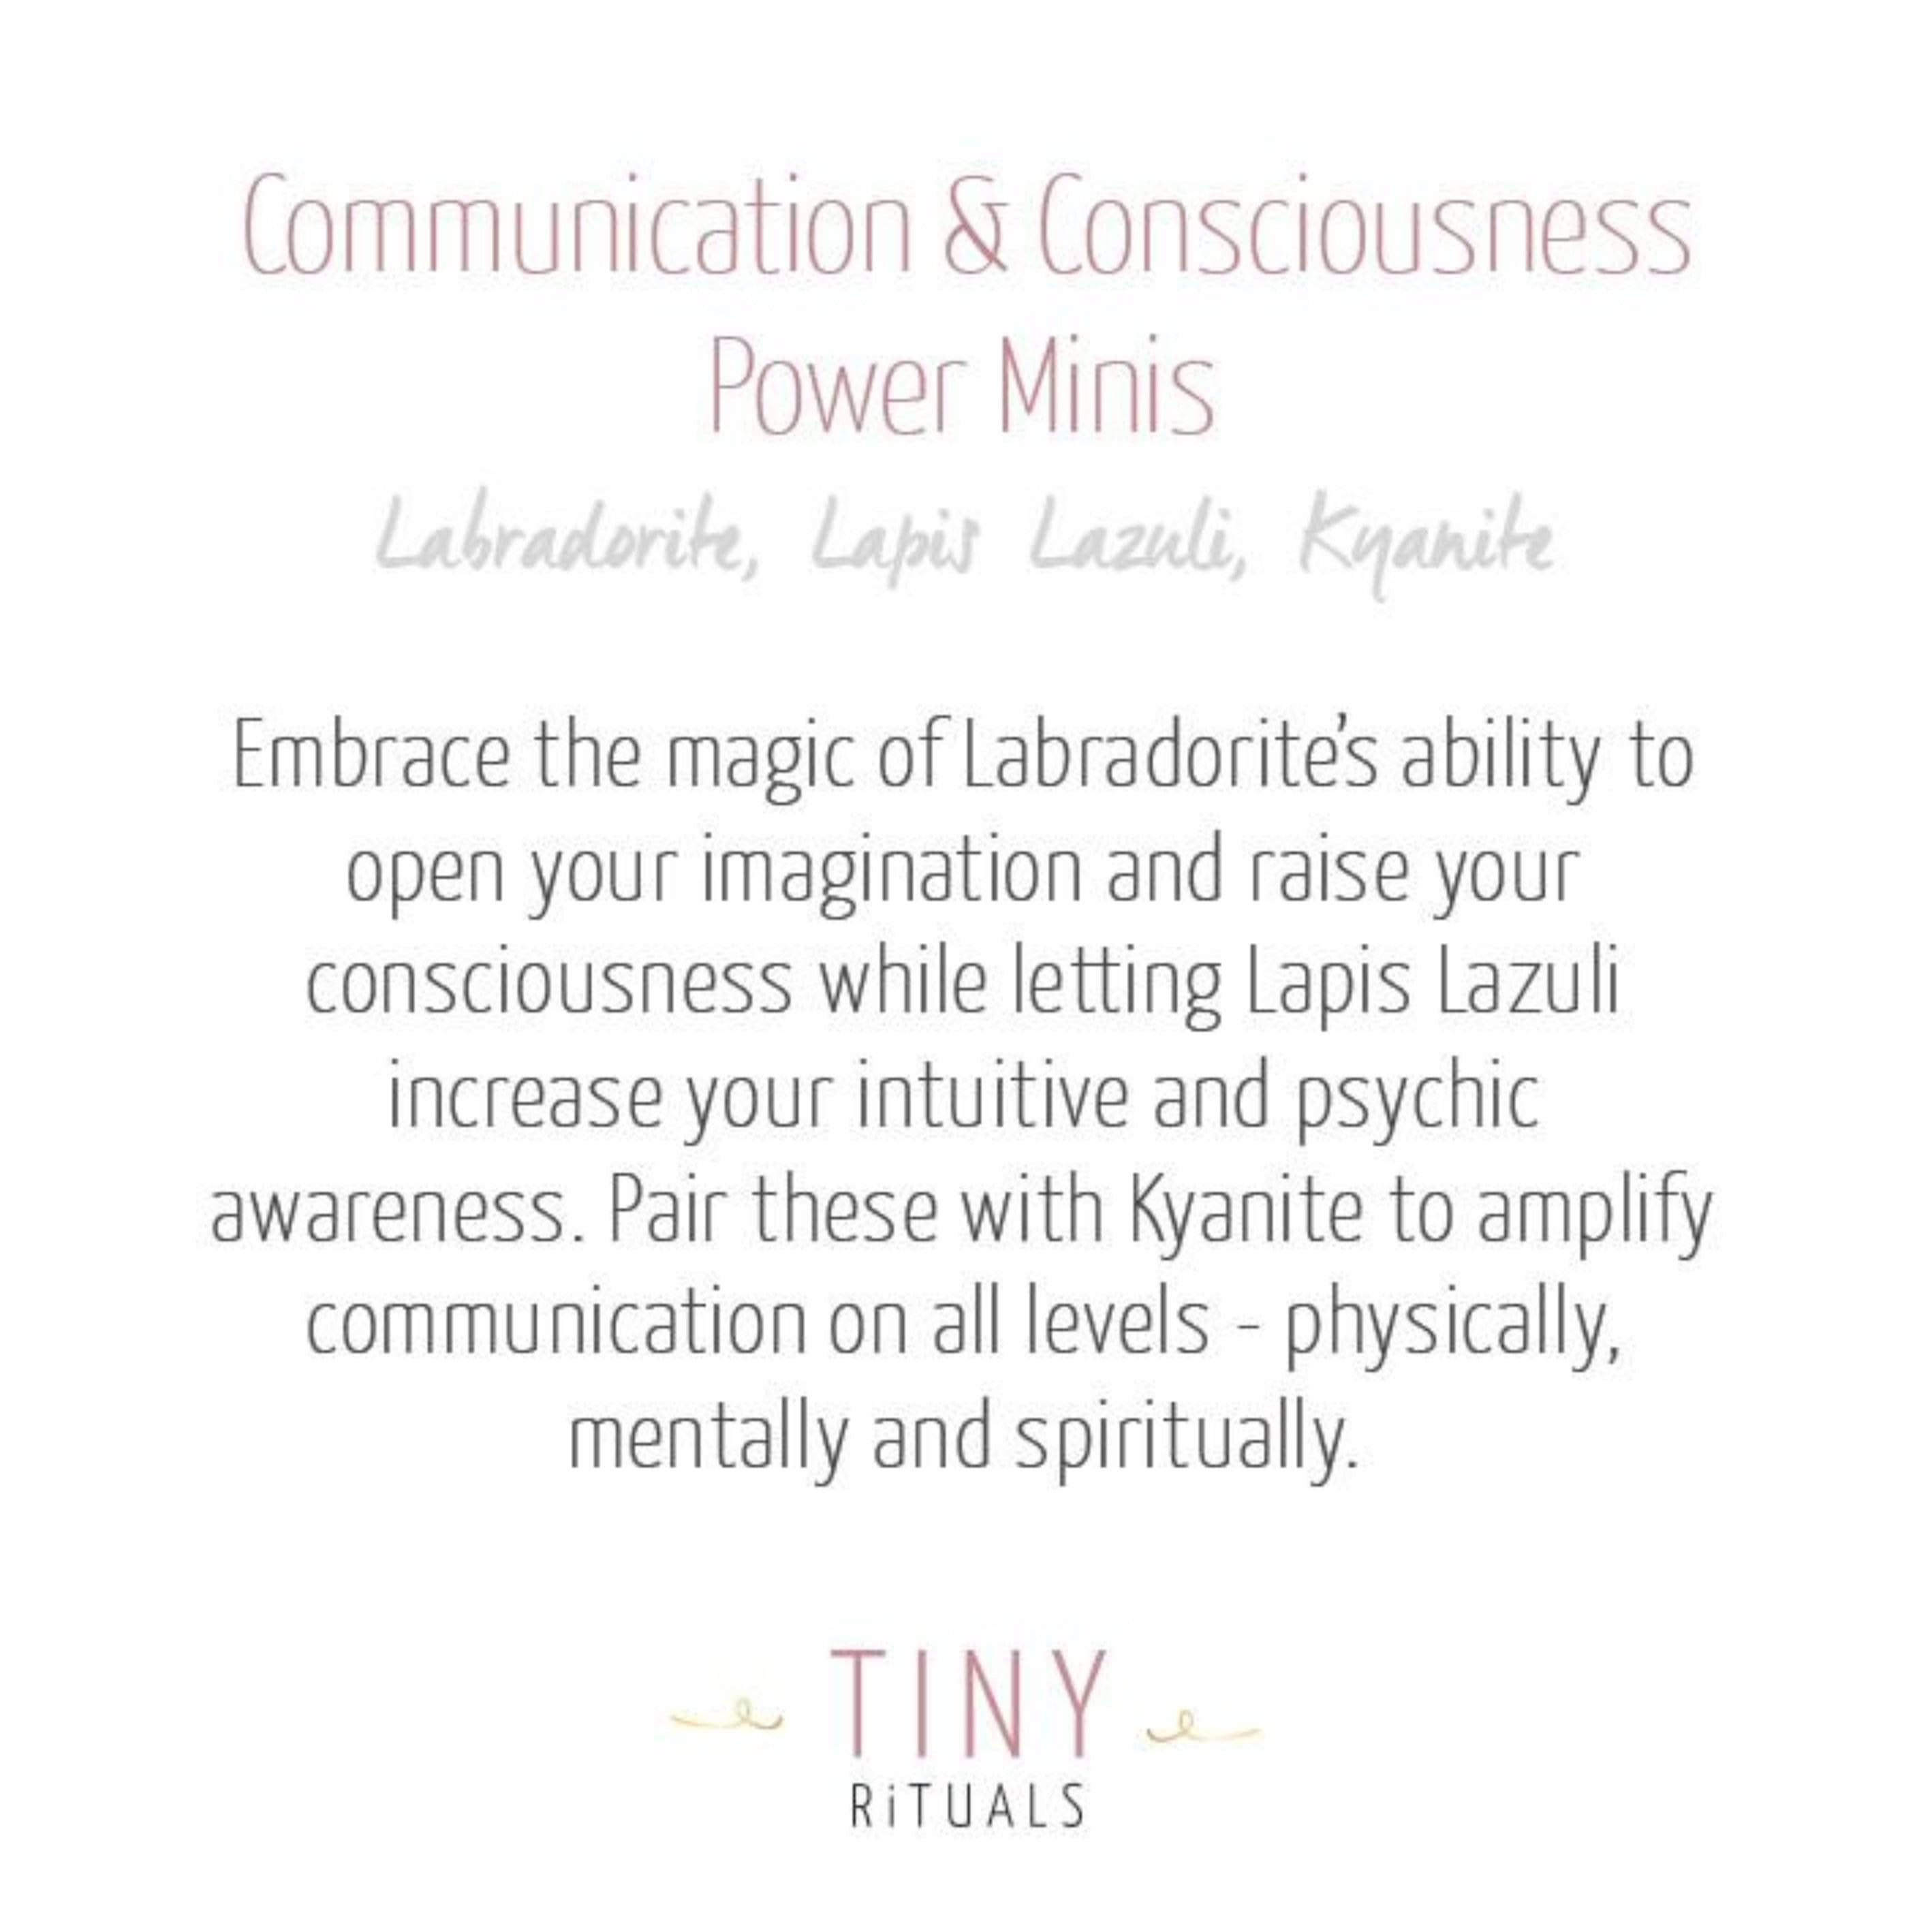 Communication & Consciousness Pack